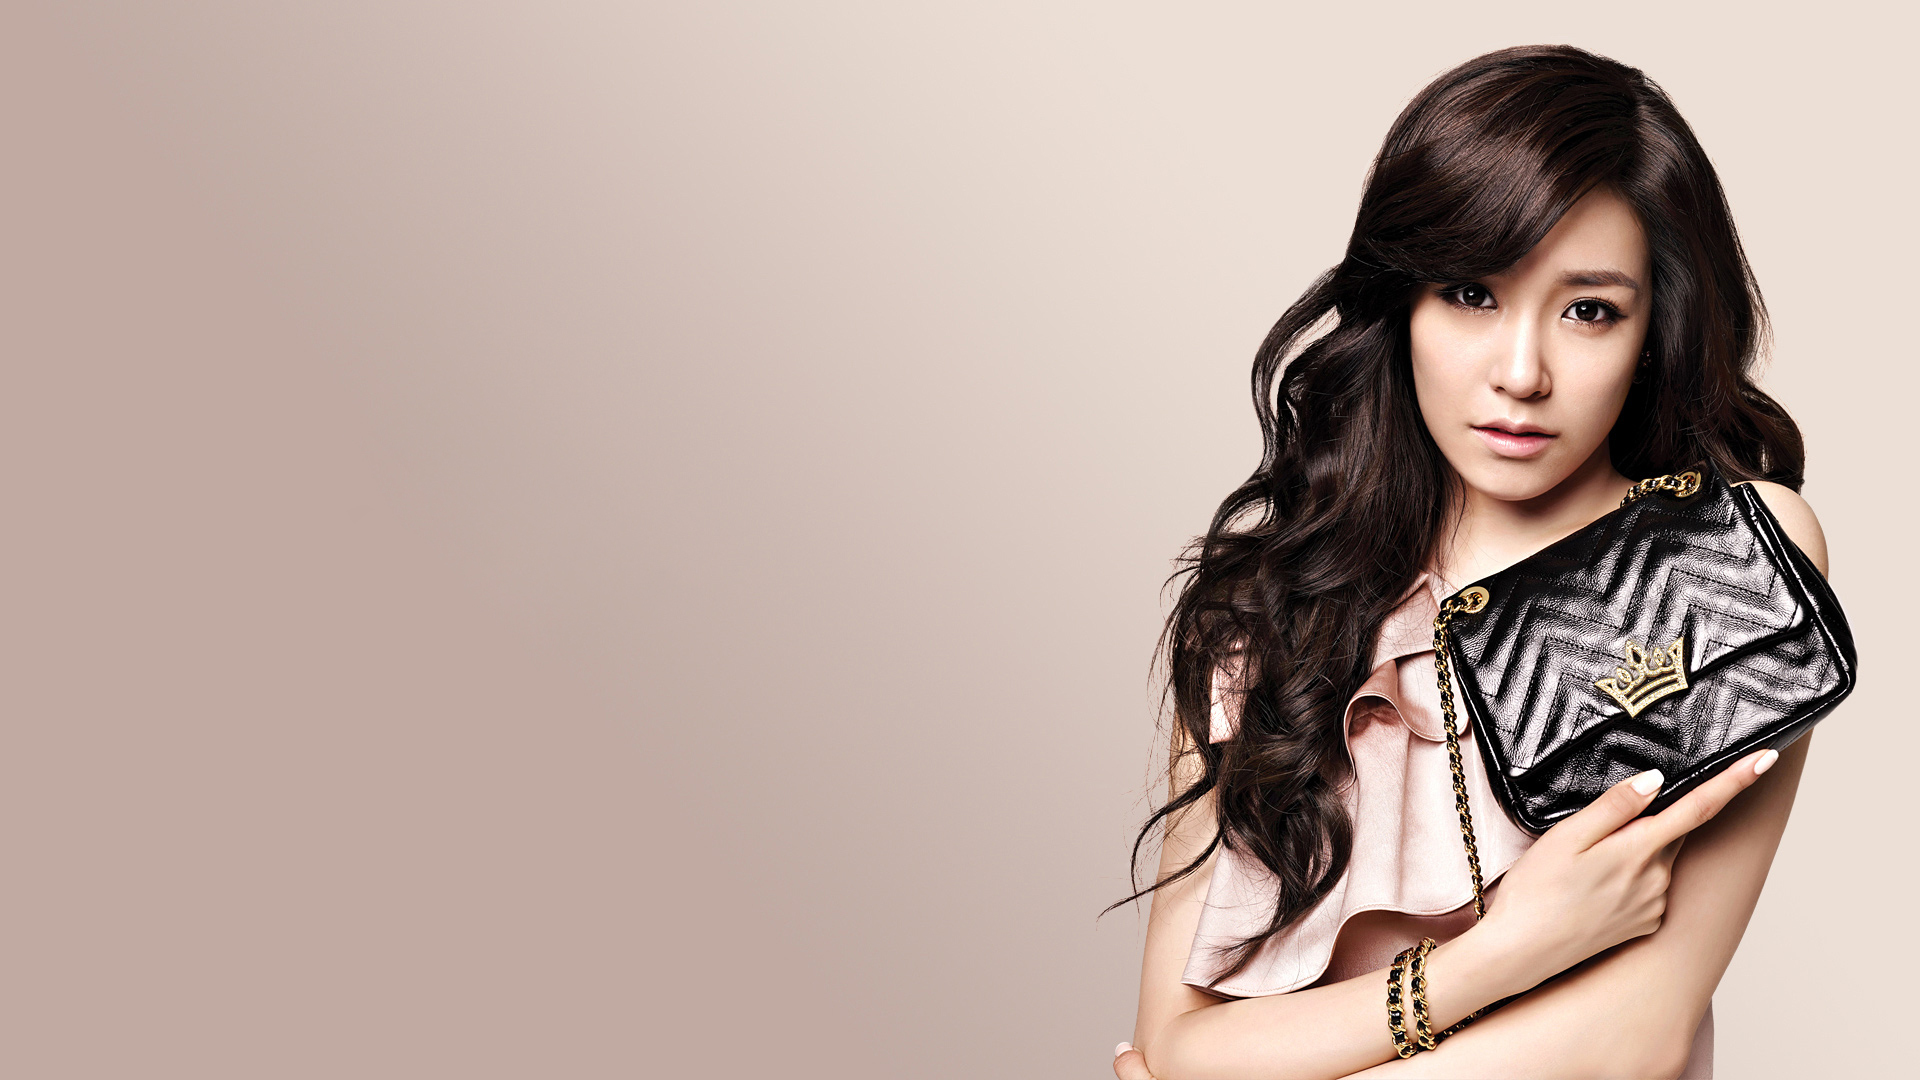 girls generation wallpapers, pictures, images